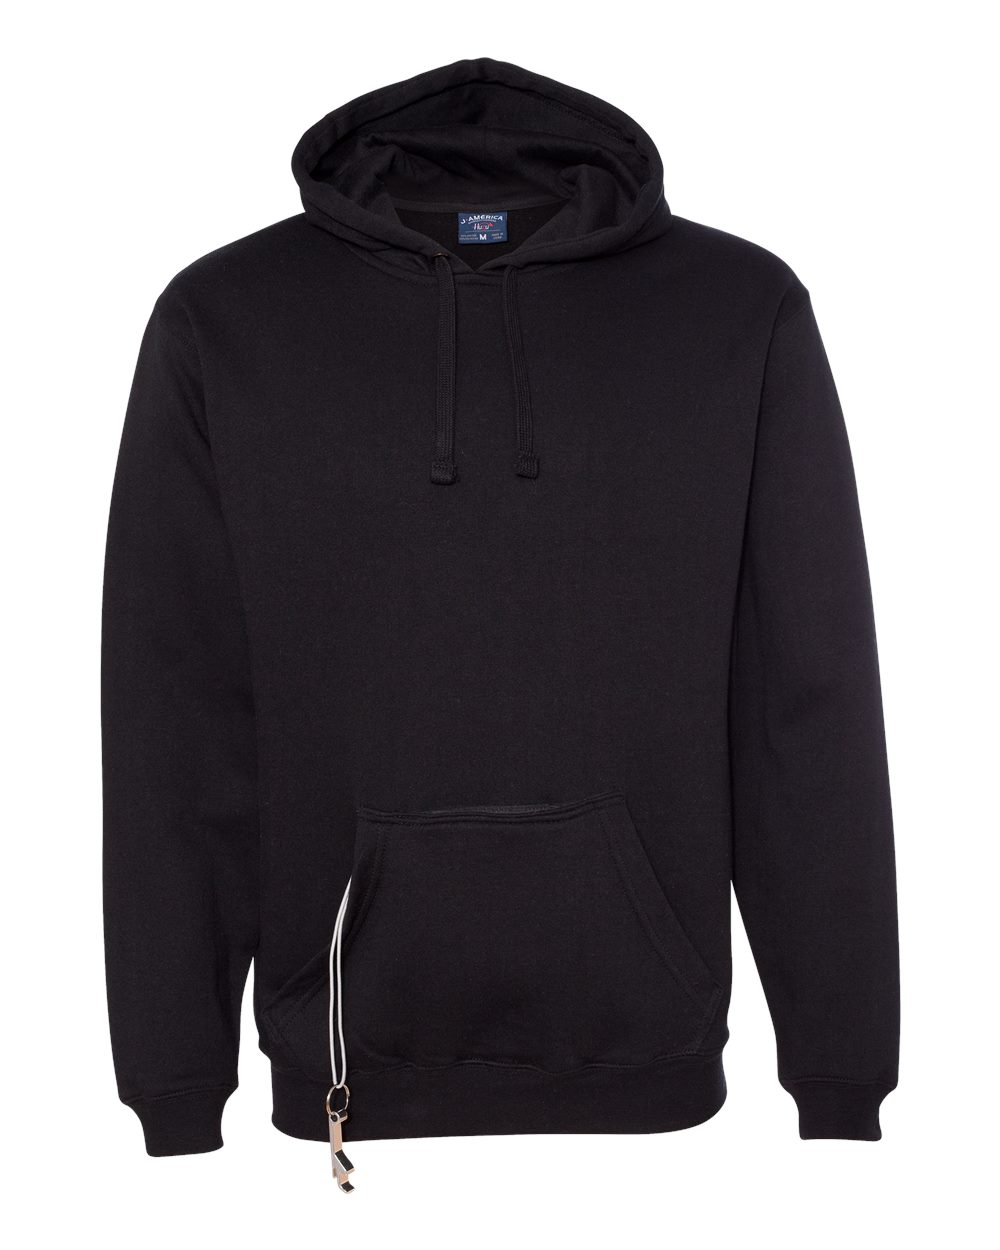 J-America-Tailgate-Hooded-Sweatshirt-with-beverage-holder-Pocket-8815-up-to-3XL thumbnail 6